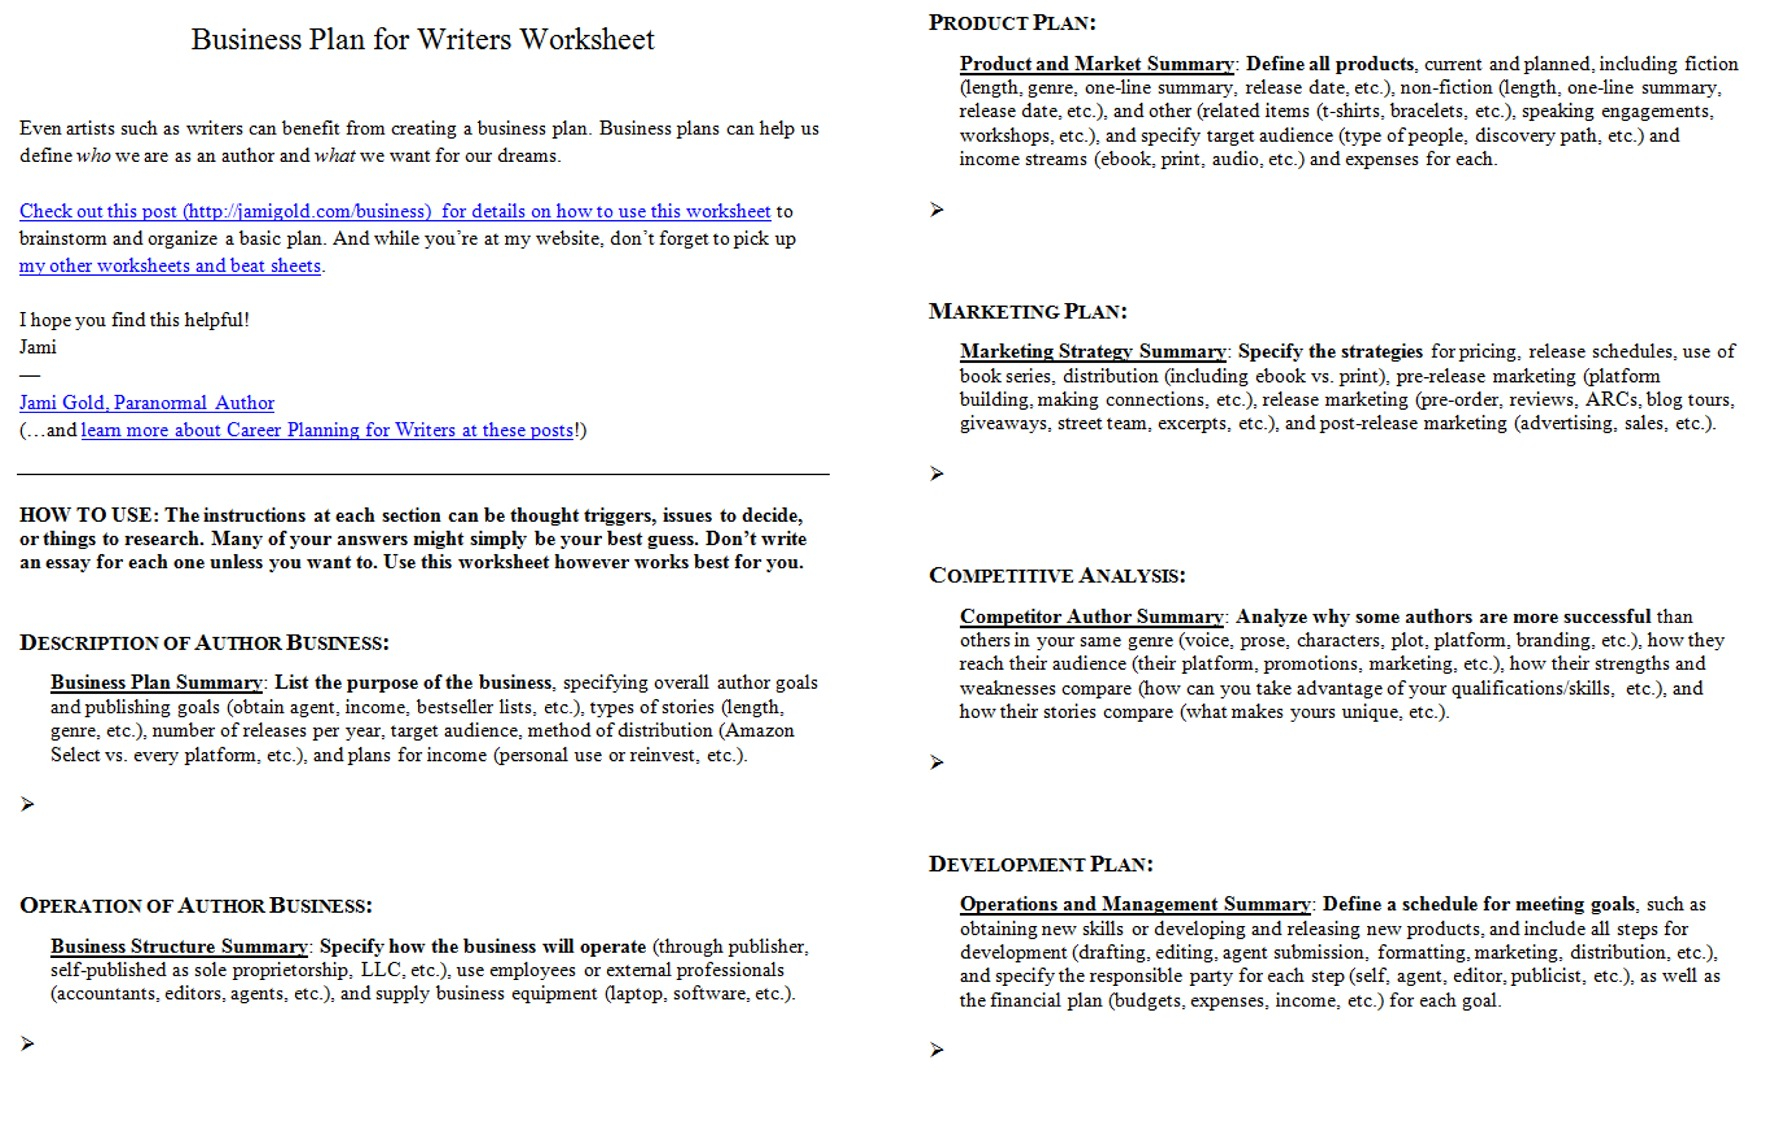 Weirdmailus  Pleasing Worksheets For Writers  Jami Gold Paranormal Author With Luxury Screen Shot Of Both Pages Of The Business Plan For Writers Worksheet With Astounding Free Basic Multiplication Worksheets Also Plurals Vs Possessives Worksheets In Addition Finding Factors Of A Number Worksheet And Pictogram Worksheets As Well As Writing An Essay Worksheet Additionally Comprehension Worksheets Year  From Jamigoldcom With Weirdmailus  Luxury Worksheets For Writers  Jami Gold Paranormal Author With Astounding Screen Shot Of Both Pages Of The Business Plan For Writers Worksheet And Pleasing Free Basic Multiplication Worksheets Also Plurals Vs Possessives Worksheets In Addition Finding Factors Of A Number Worksheet From Jamigoldcom